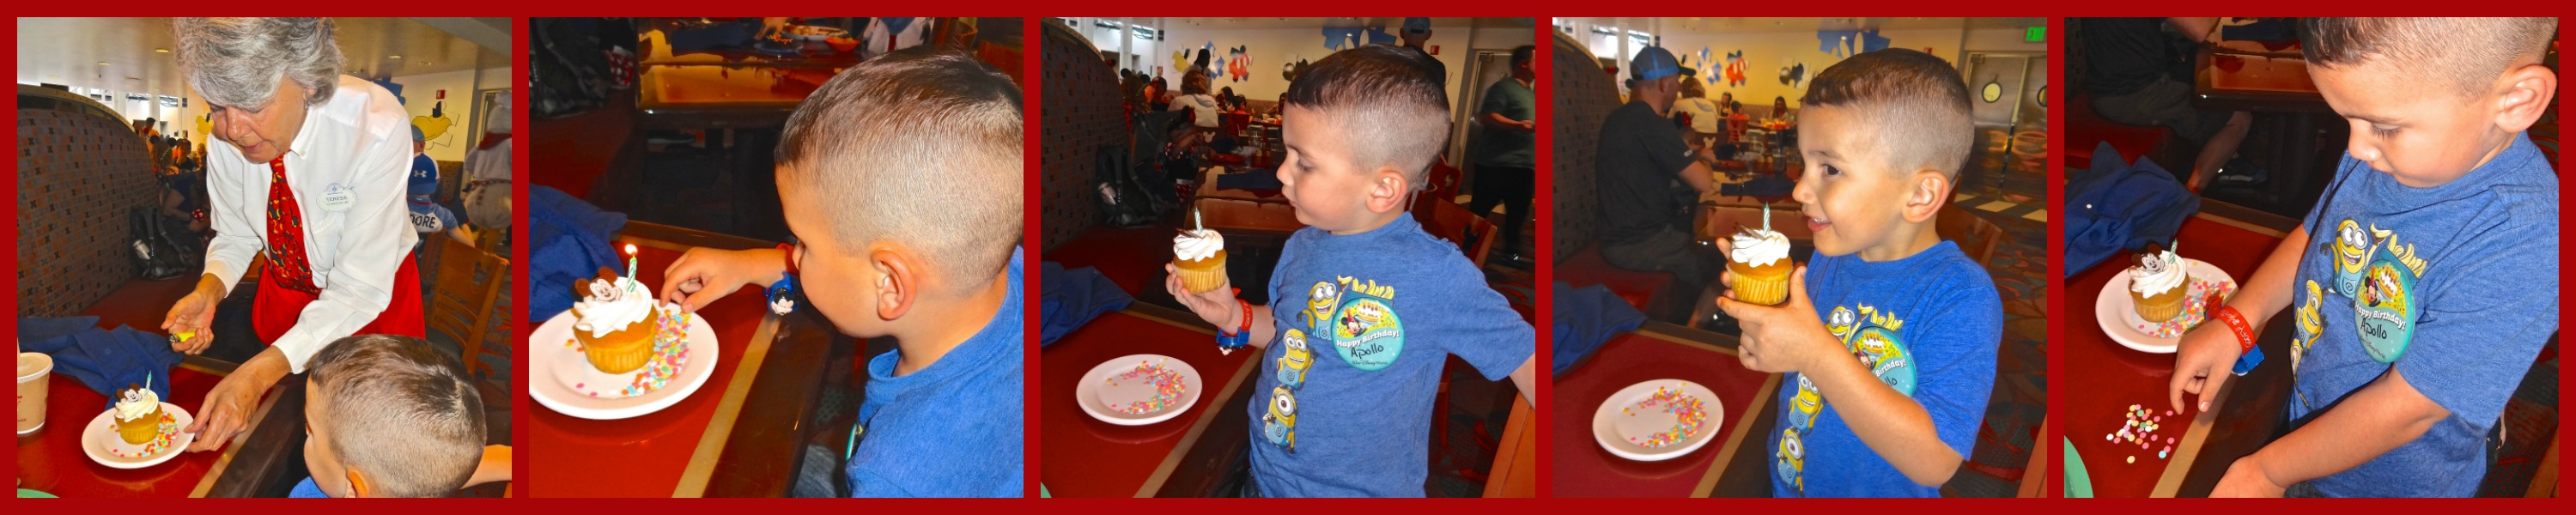 Apollo's Birthday Cupcake at Chef Mickey's with Candy Confetti